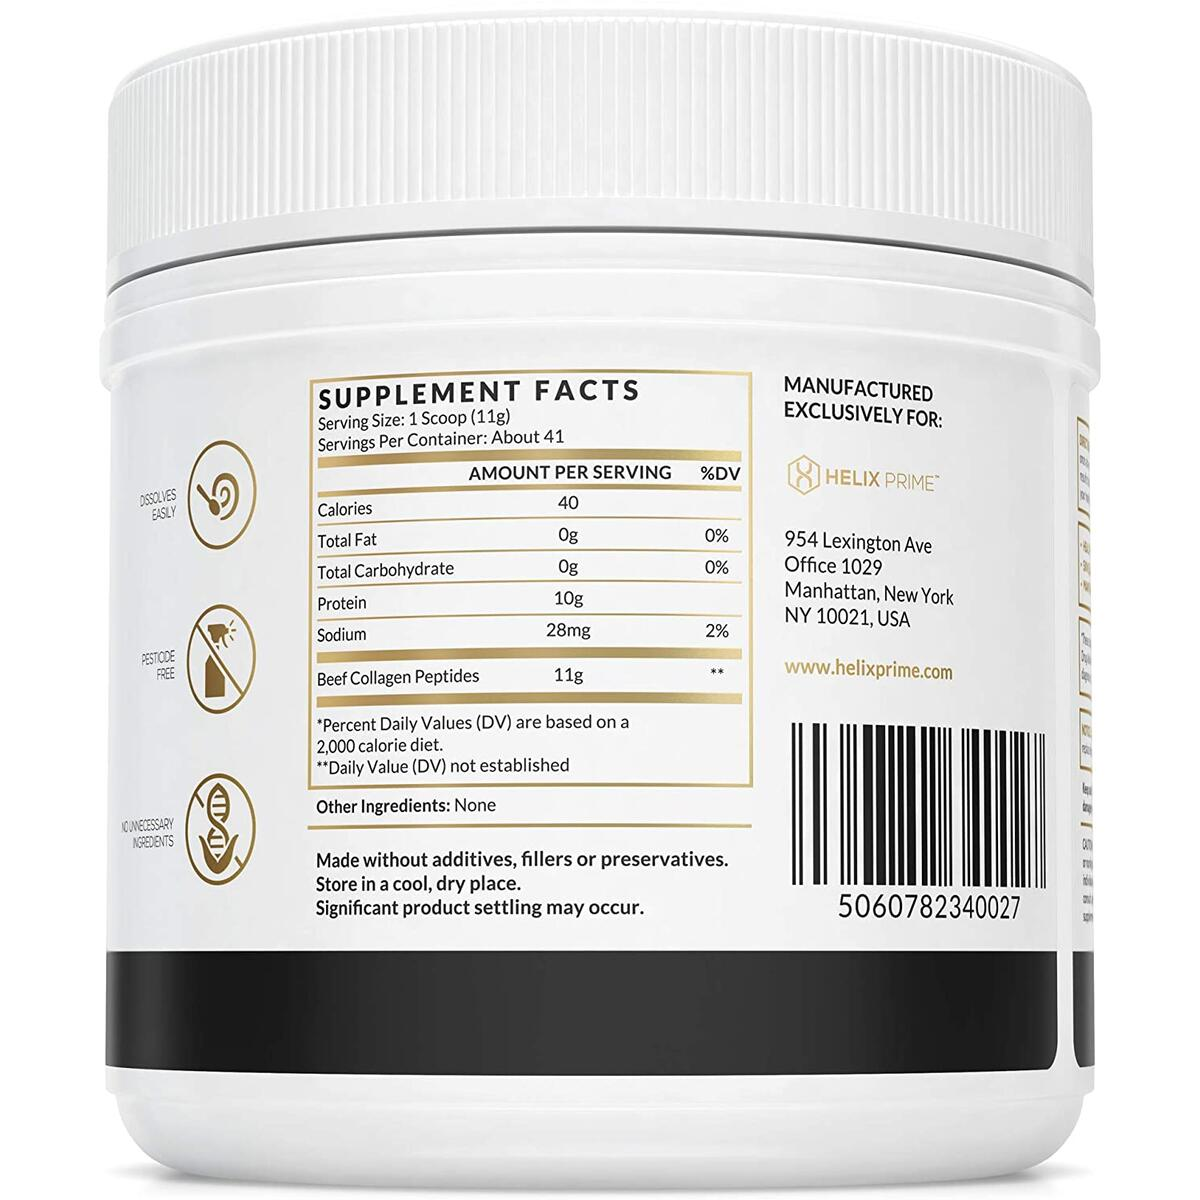 Collagen Peptides Powder Unflavored 1LB Jar 16OZ Grass Fed Pasture Raised Bovine Collagen for Beauty, Skin, Nails, Hair with 18 Amino Acids for Hot or Cold Beverages & Smoothies NO Additives